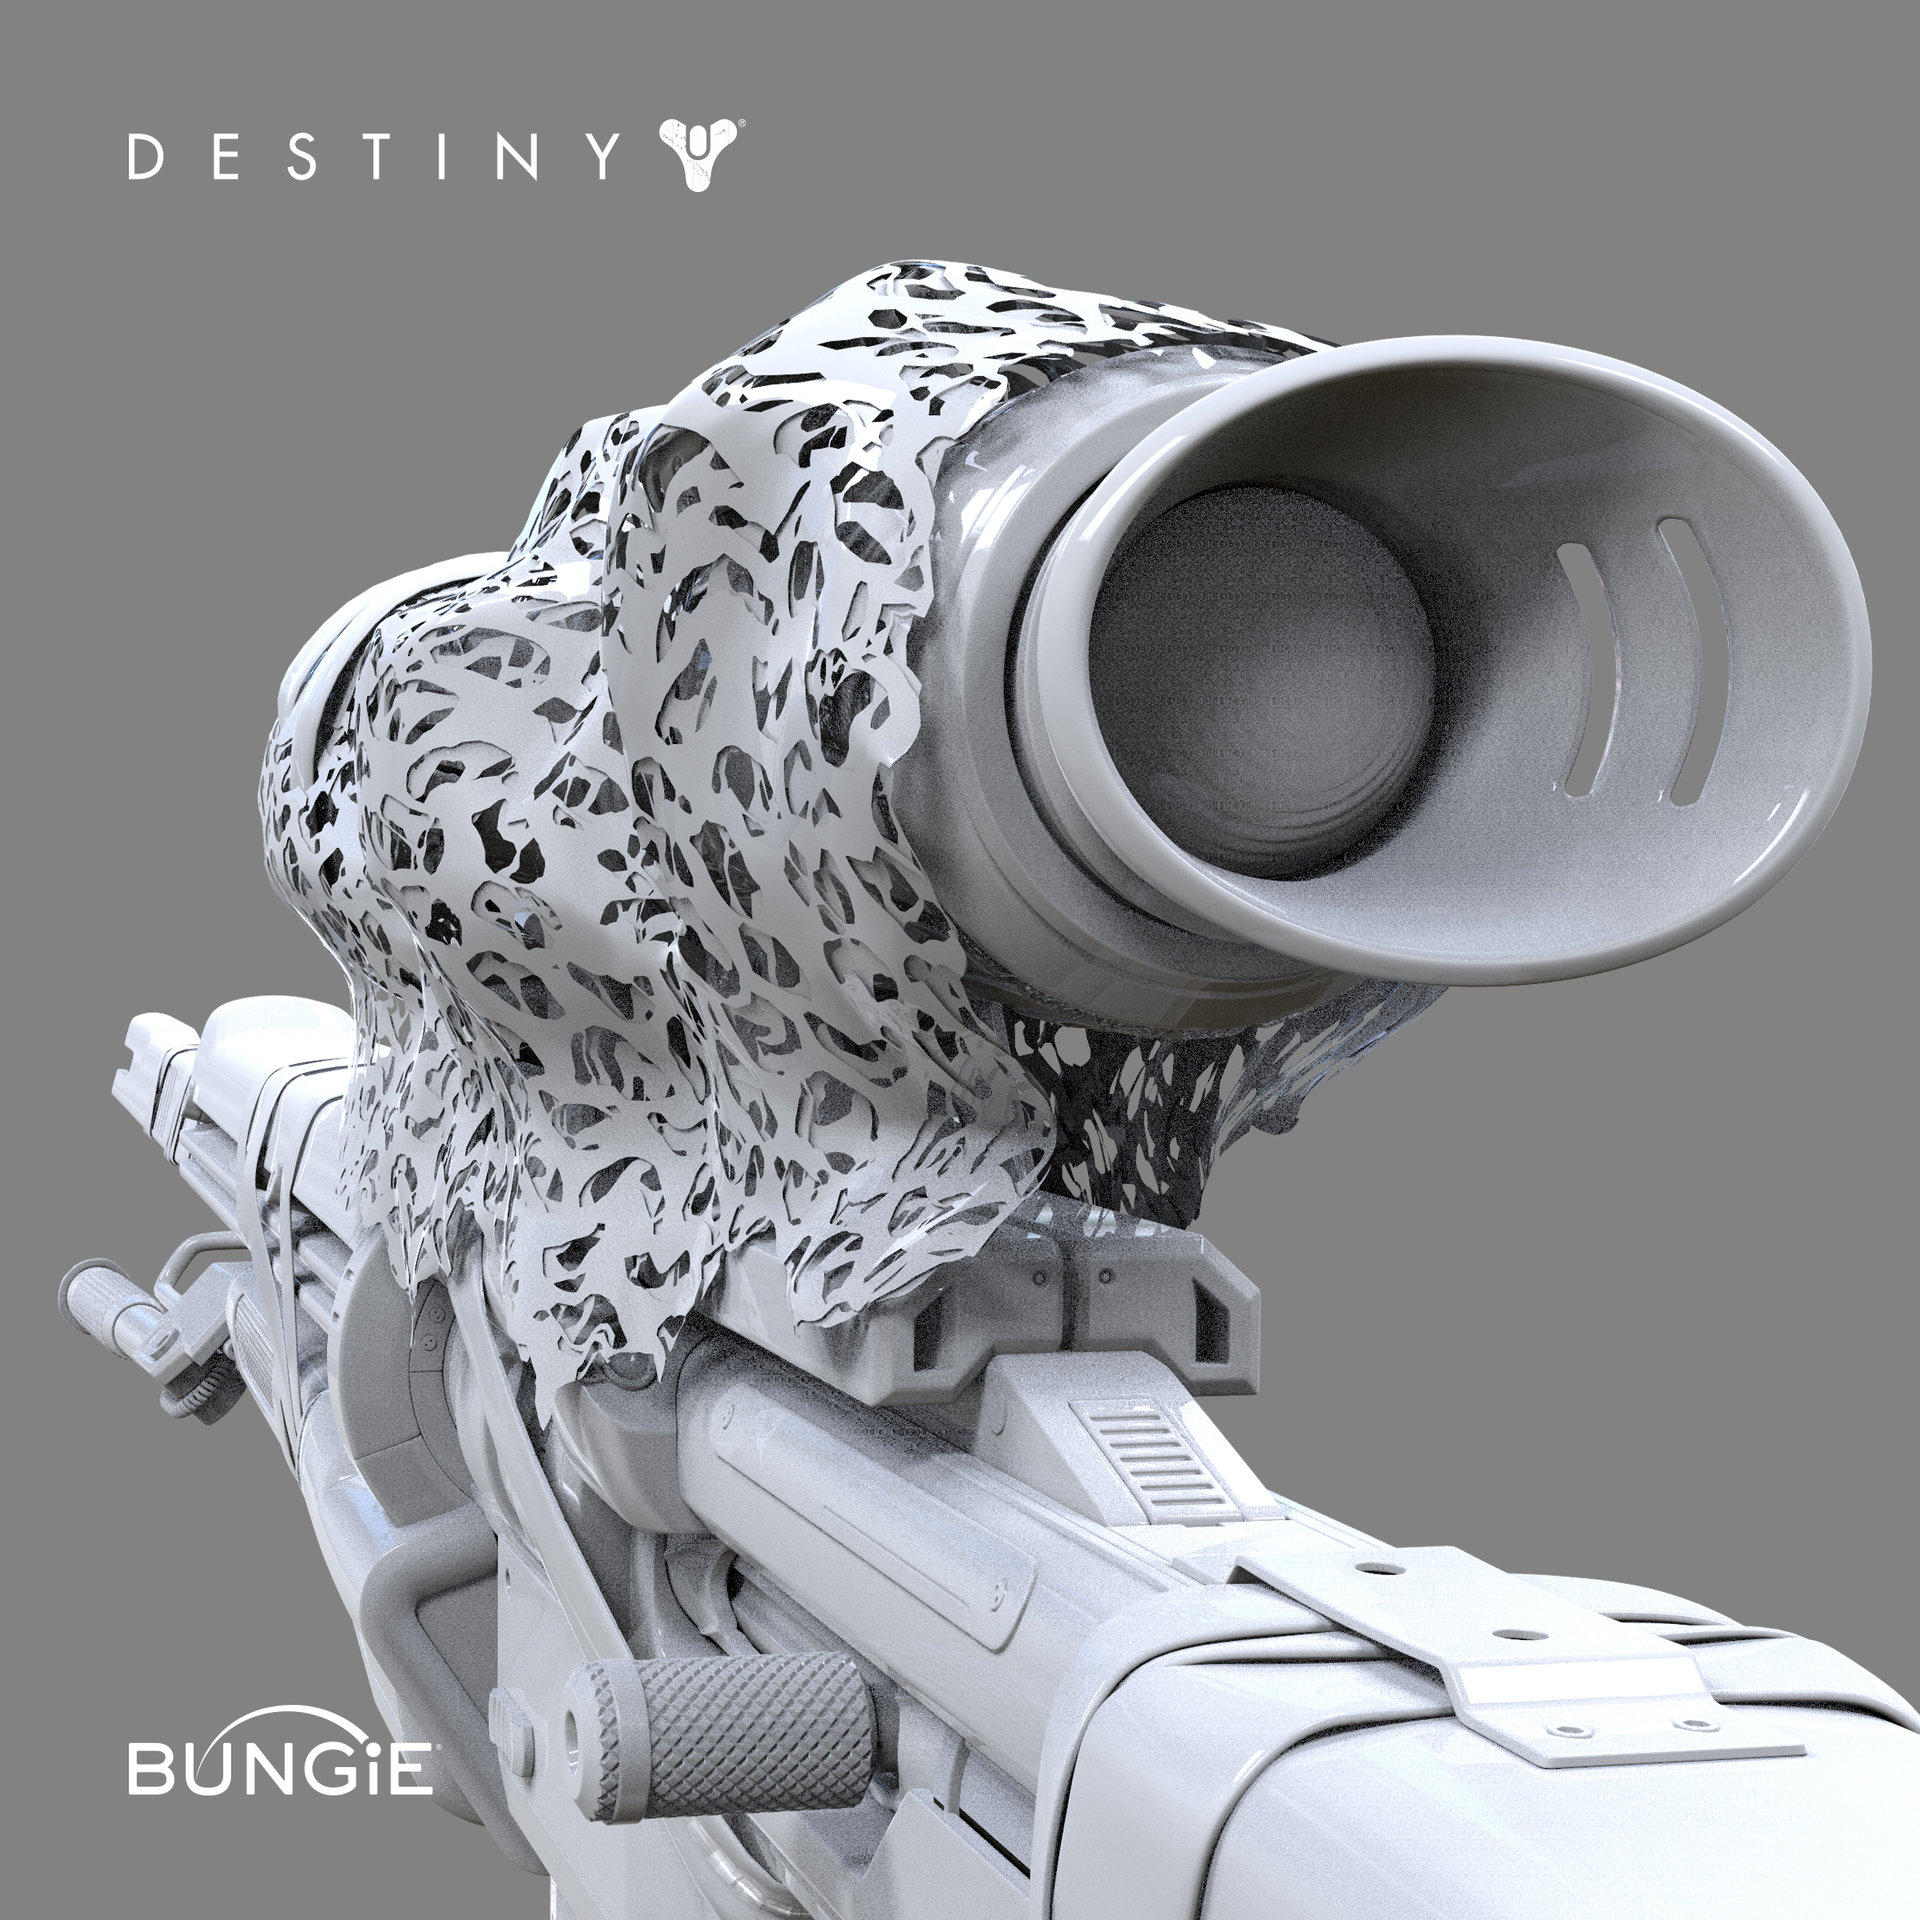 destiny_david-stammel-sniper-rifle-exotic-p-t-high-poly-fp